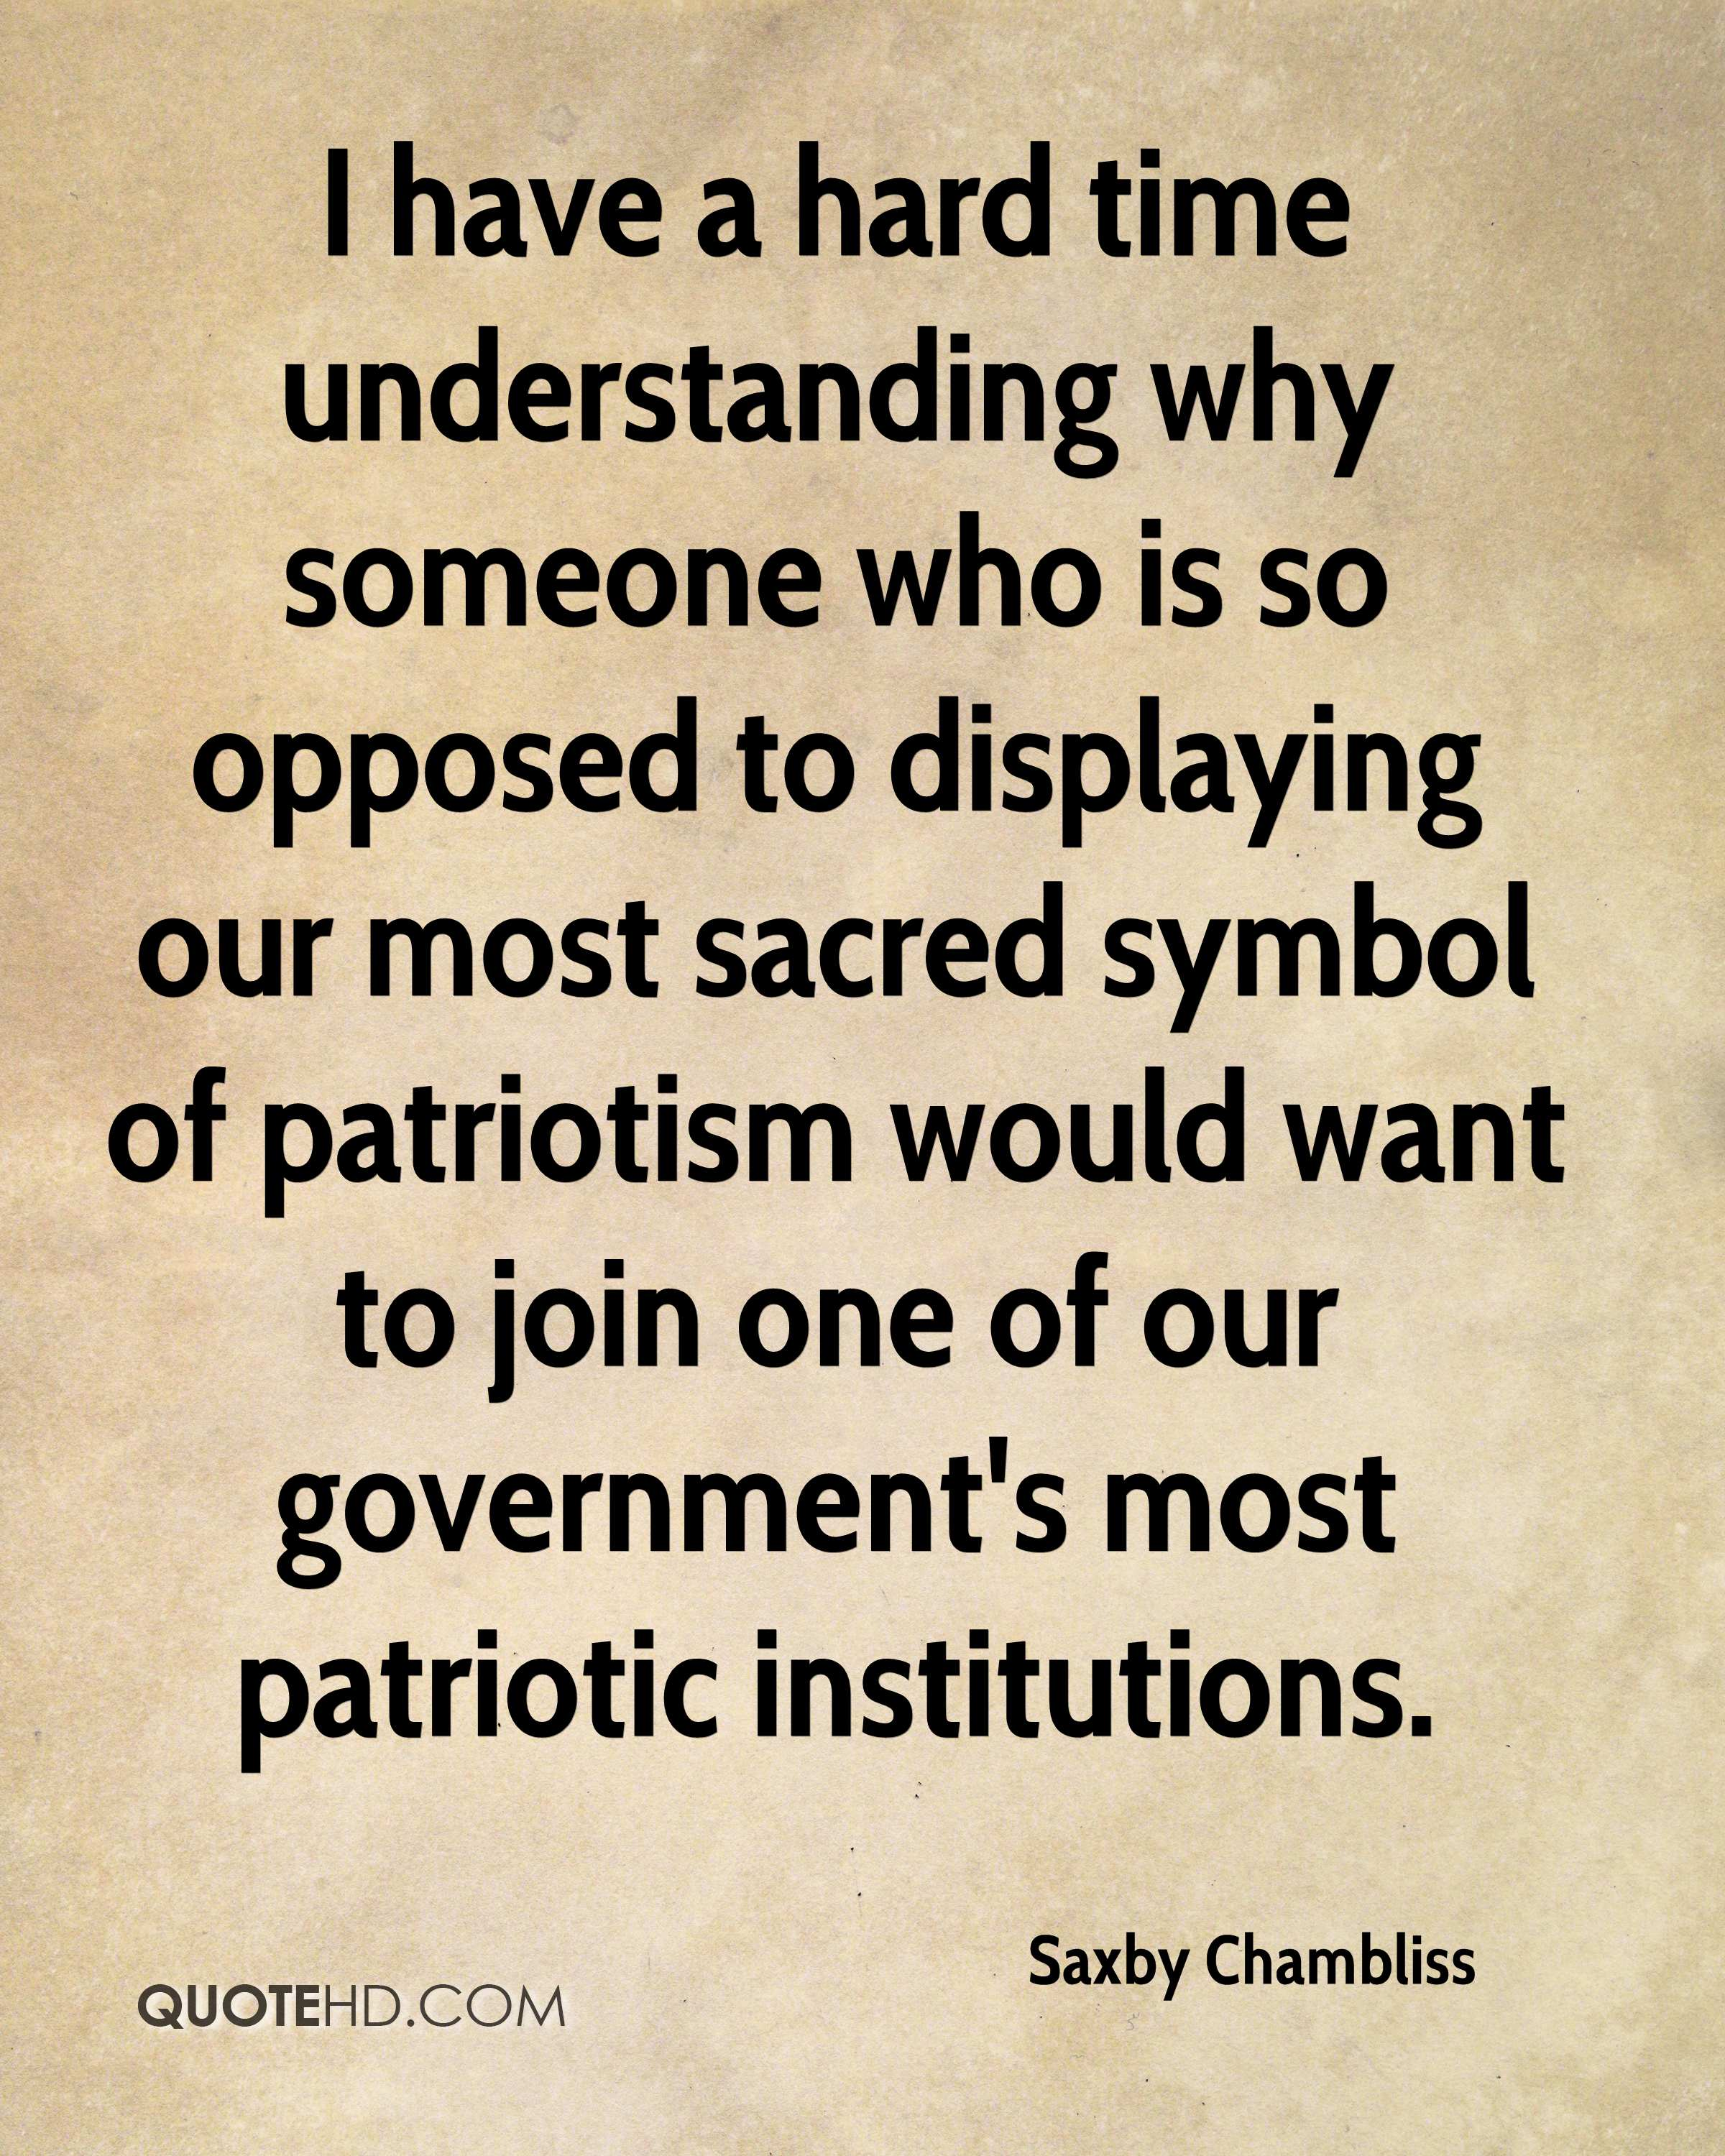 I have a hard time understanding why someone who is so opposed to displaying our most sacred symbol of patriotism would want to join one of our government's most patriotic institutions.